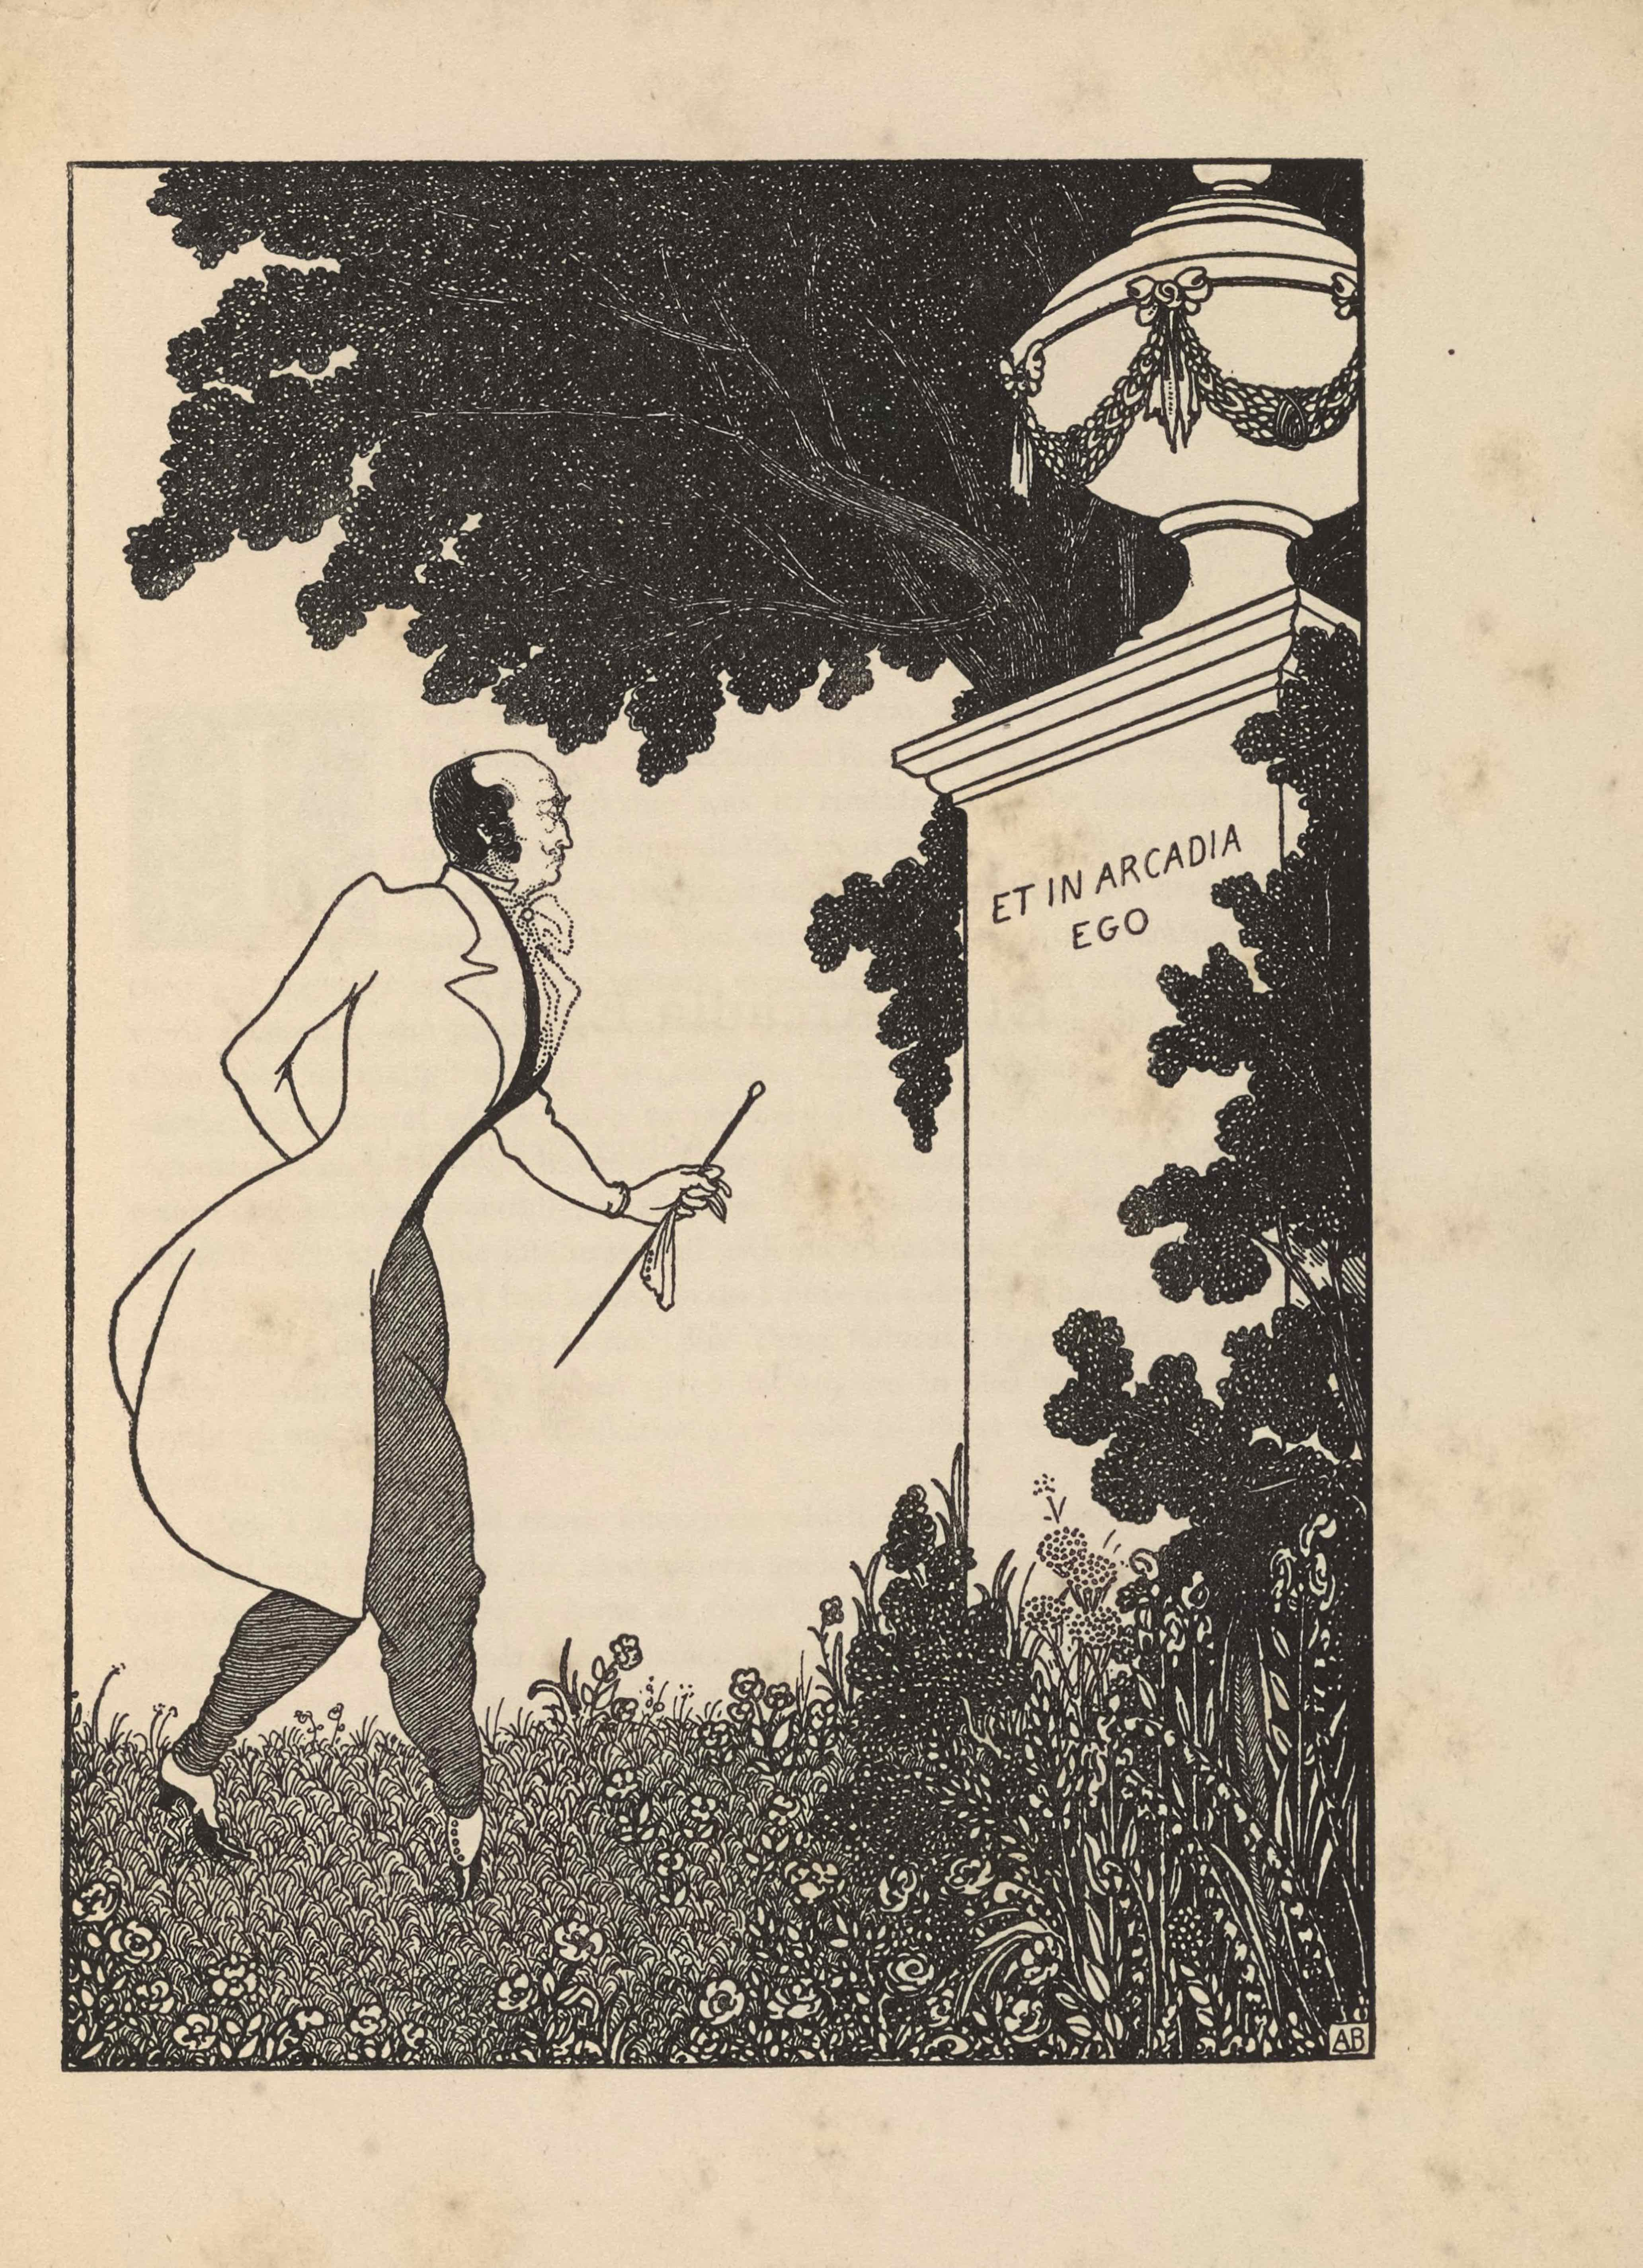 """The framed illustration, in portrait orientation, uses a line-block reproduction of Beardsley's pen-and-ink design.. The image depicts a contemporary man in a tailcoat in a garden or park standing before a large column with an urn on top. Situated on the right of the composition, the tall white column is partially covered by the leaves of a tall bush. Around its base there is long grass and a variety of plants and flowers. On the column is etched the illustration's title: """"ET IN ARCADIA EGO"""" [caps]. Atop the column rests a large covered urn with a thin base and a rounded body. The body of the urn is wreathed in a looping garland that is tied with evenly spaced bows. The top of the urn is tiered; atop the smallest tier rests a circular knob. A dark tree extends up from behind the column, it continues to the left side of the image and gets cut off by the top edge of the illustration. The grass on the left side of the image is shorter, A man stands on the left of the composition in profile, facing the column on the right. He is in mid step towards the column. He has a black mustache and black hair; he is balding. He has a white tailcoat that extends down to his knees. He has a black shirt under the coat and a white cravat at his neck. He has grey trousers on that are tucked in at the bottom into white and black pumps. His right hand is tucked behind his back. His left hand is extended out slightly. In it he holds a white handkerchief and cane. The artist's initials """"AB"""" [caps] are hand printed in the bottom right corner of the image."""